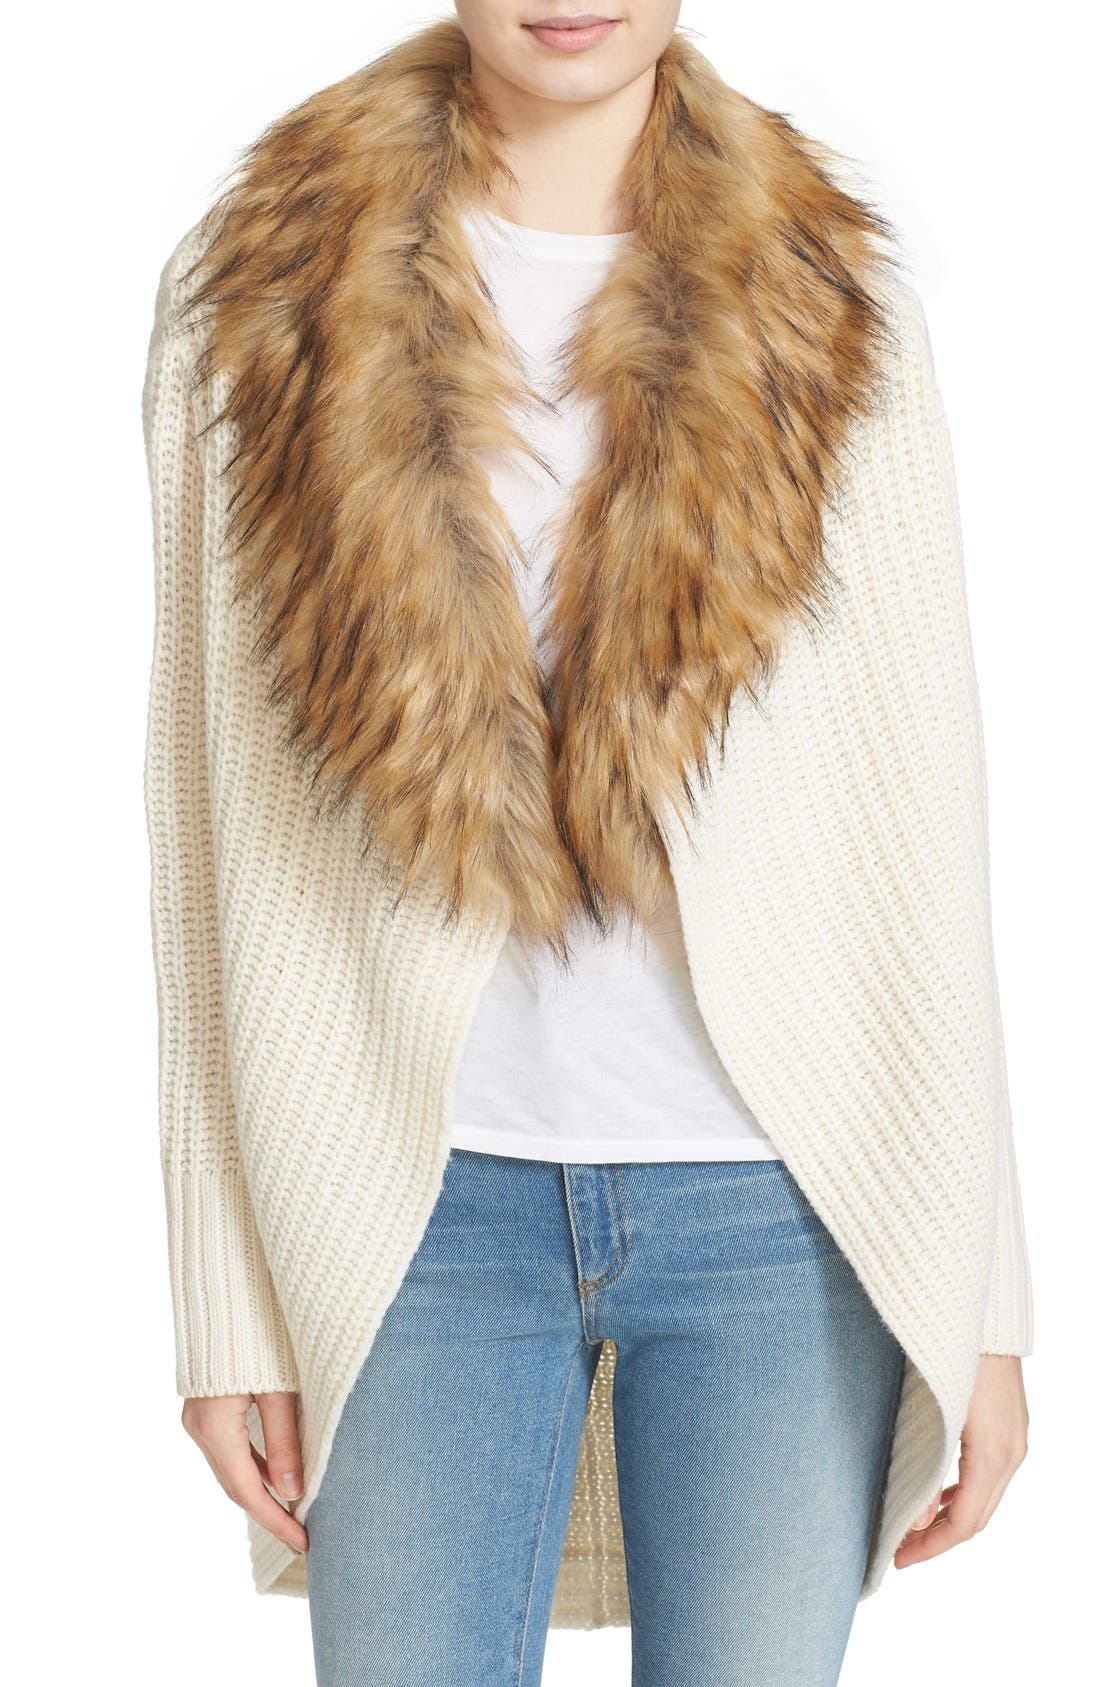 'Helma' Wool & Yak Cardigan with Faux Fur Collar,                             Main thumbnail 1, color,                             120